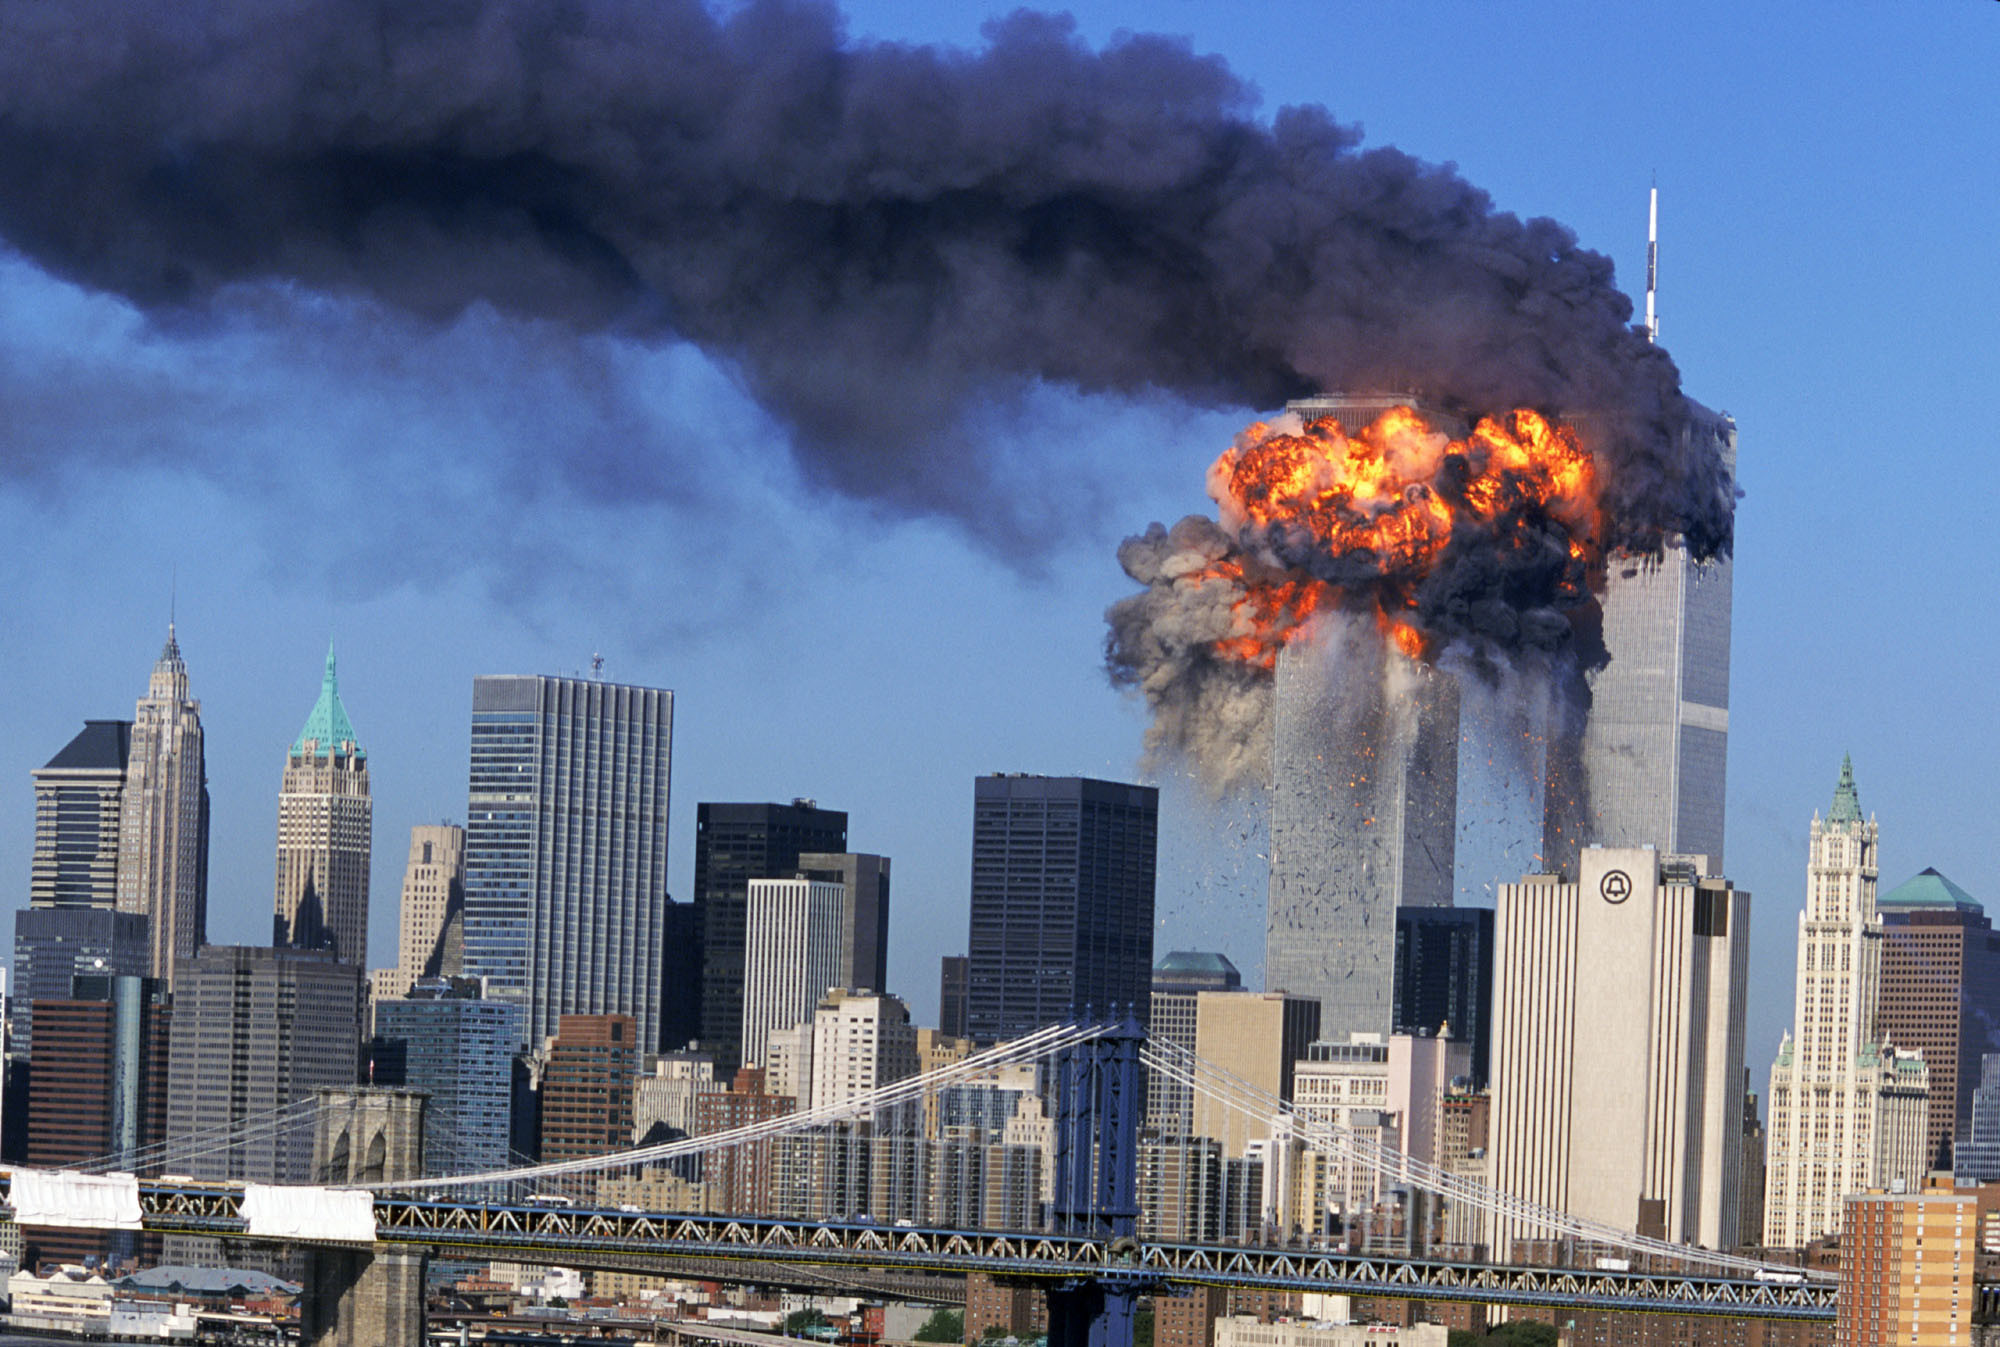 Remembering 9/11 Attacks on World Trade Center